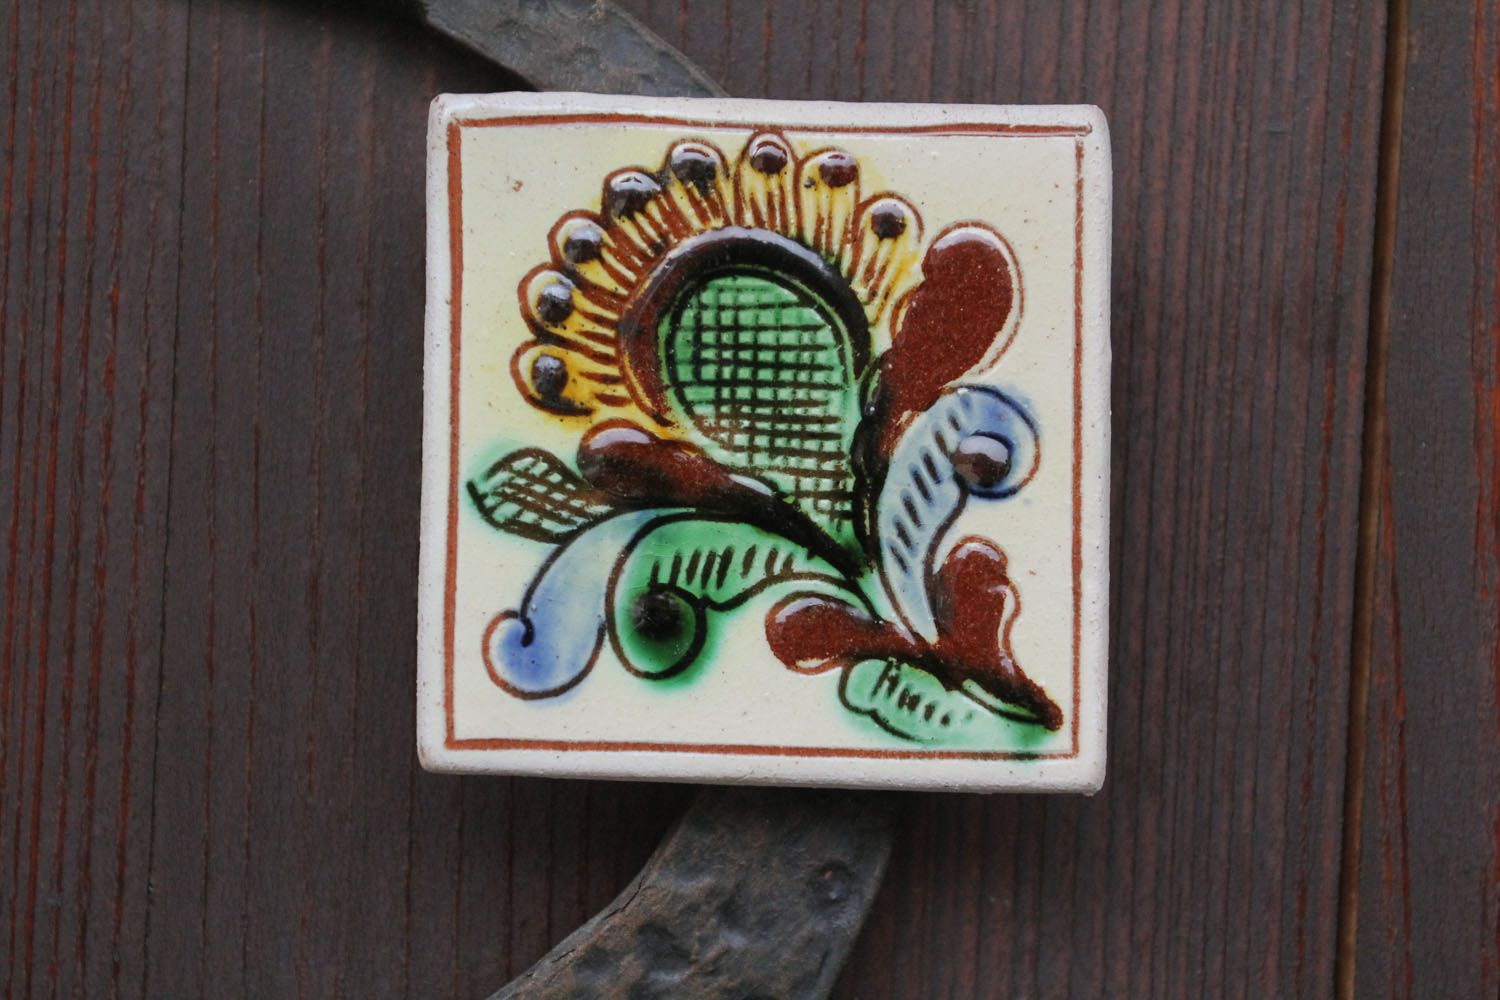 Ceramic fridge magnet photo 1